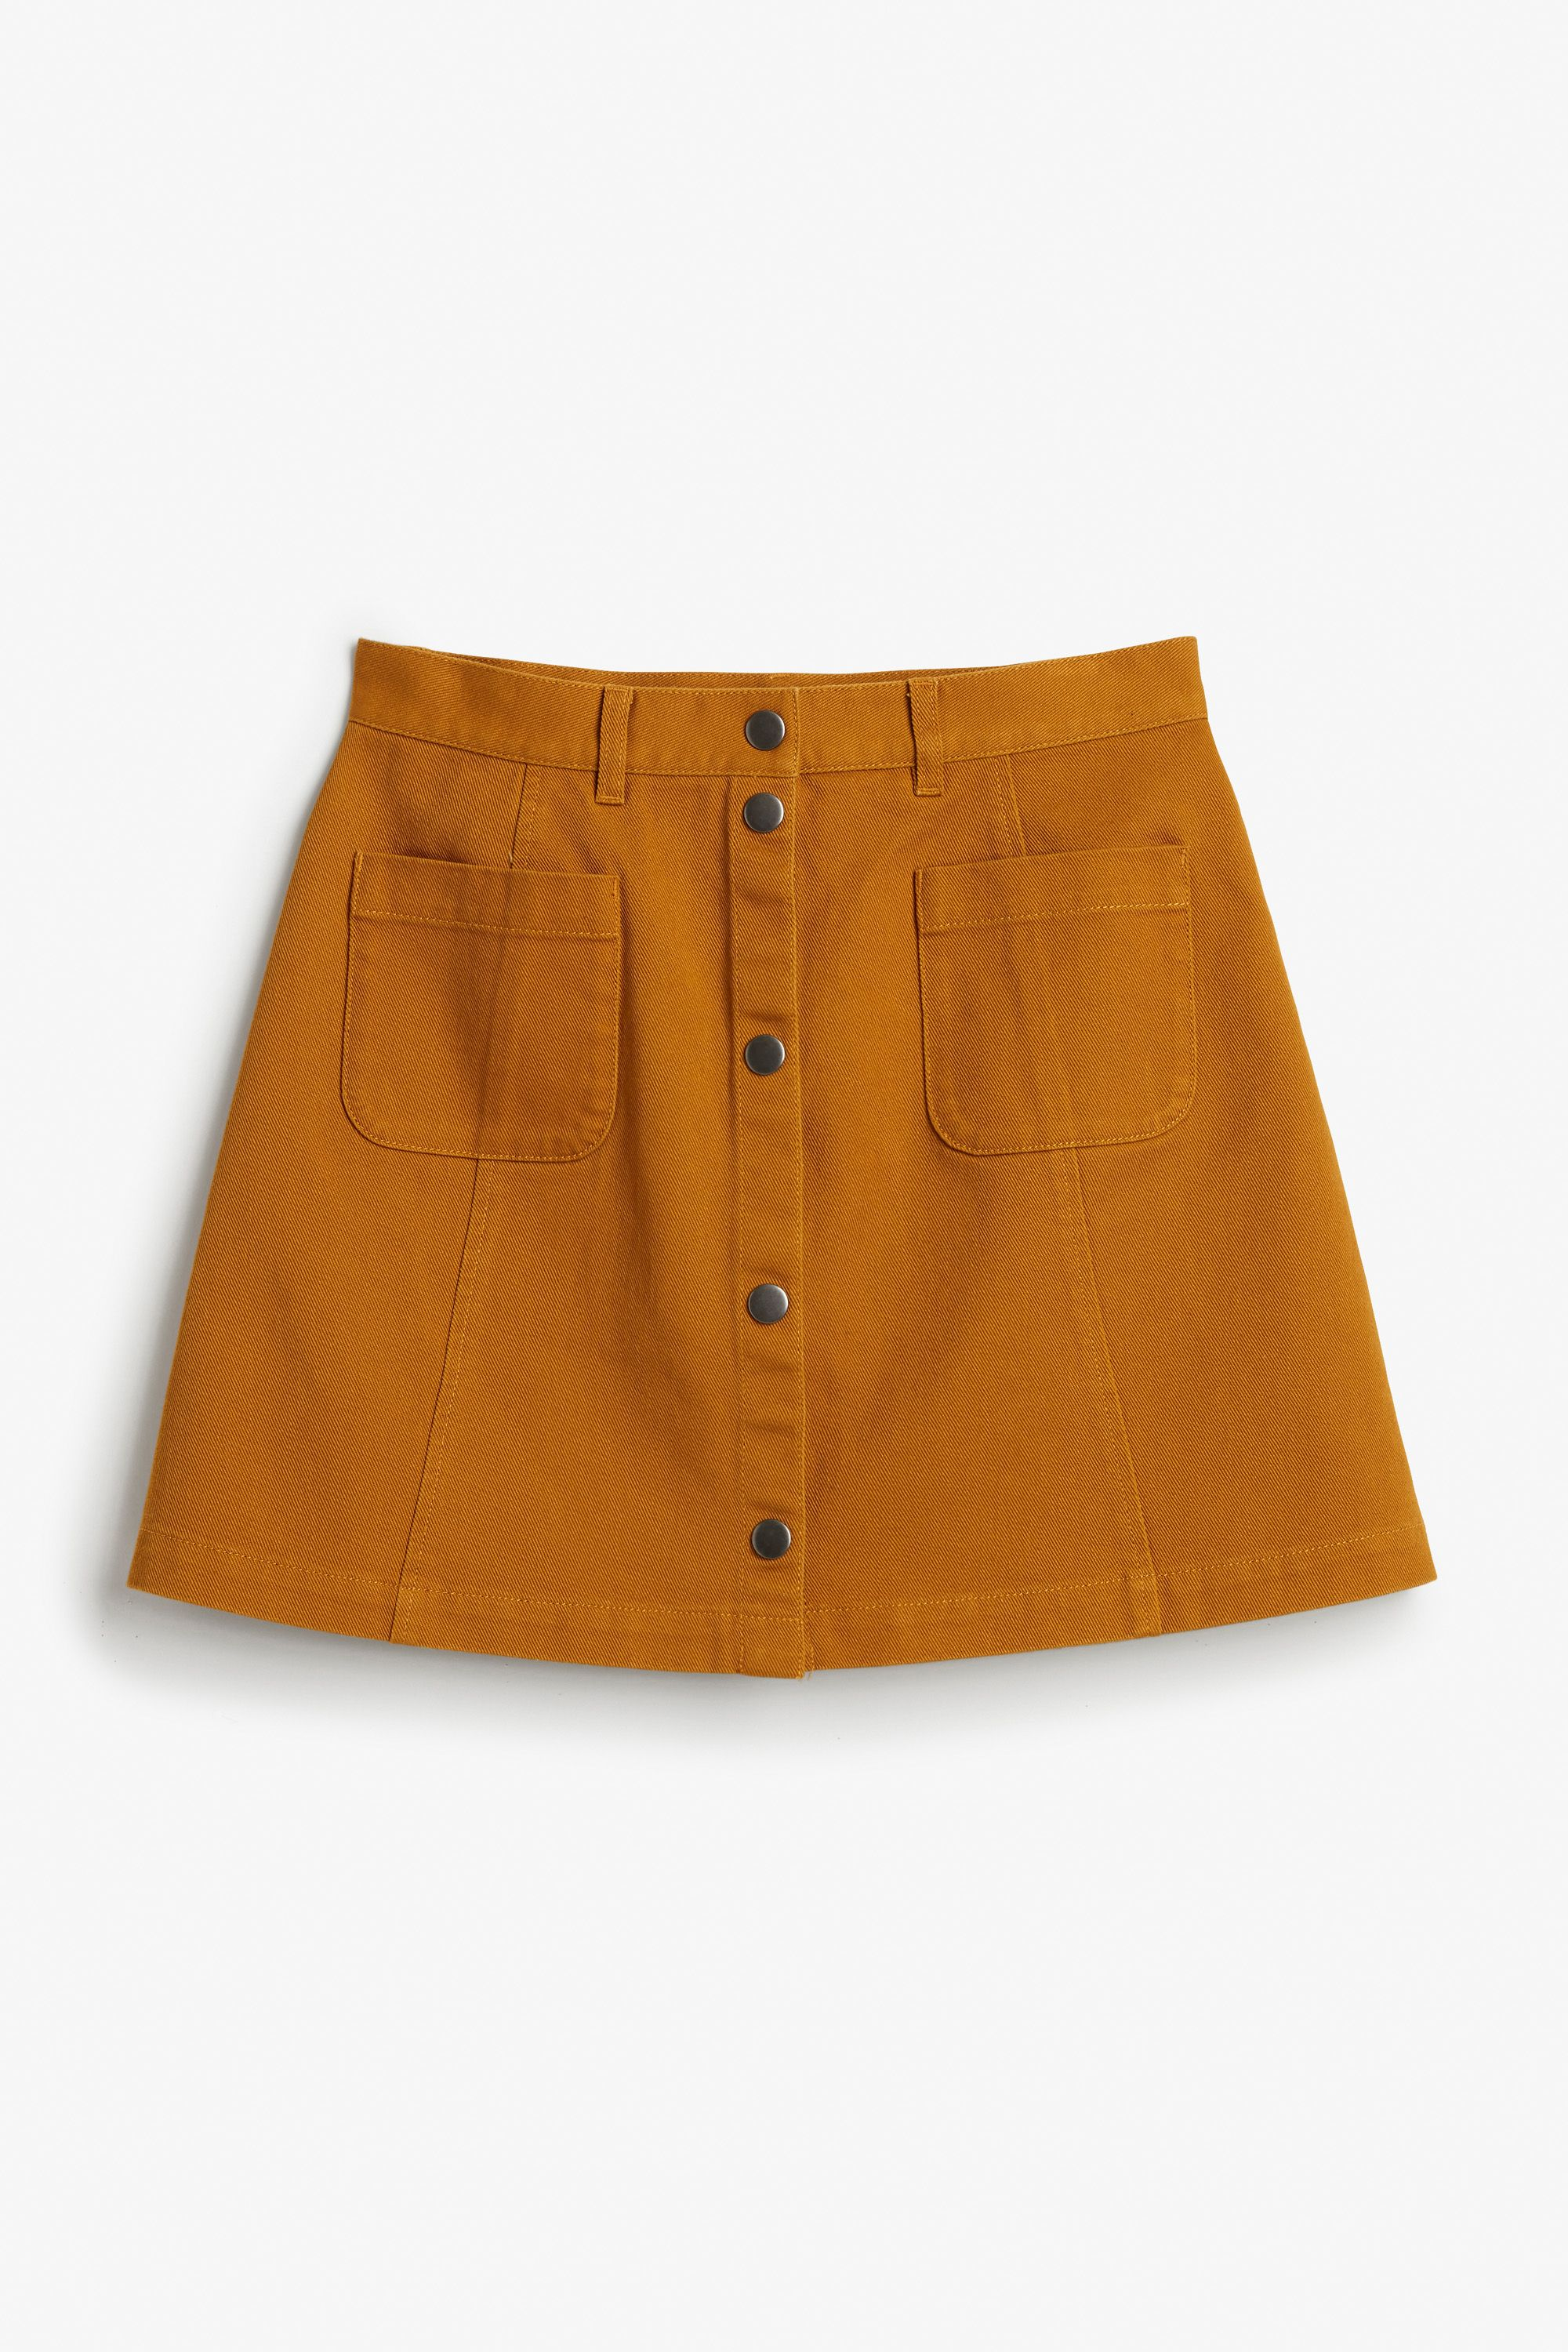 fb4d36d722 Monki Image 1 of Button-front A-line mini skirt in Yellow Reddish Dark